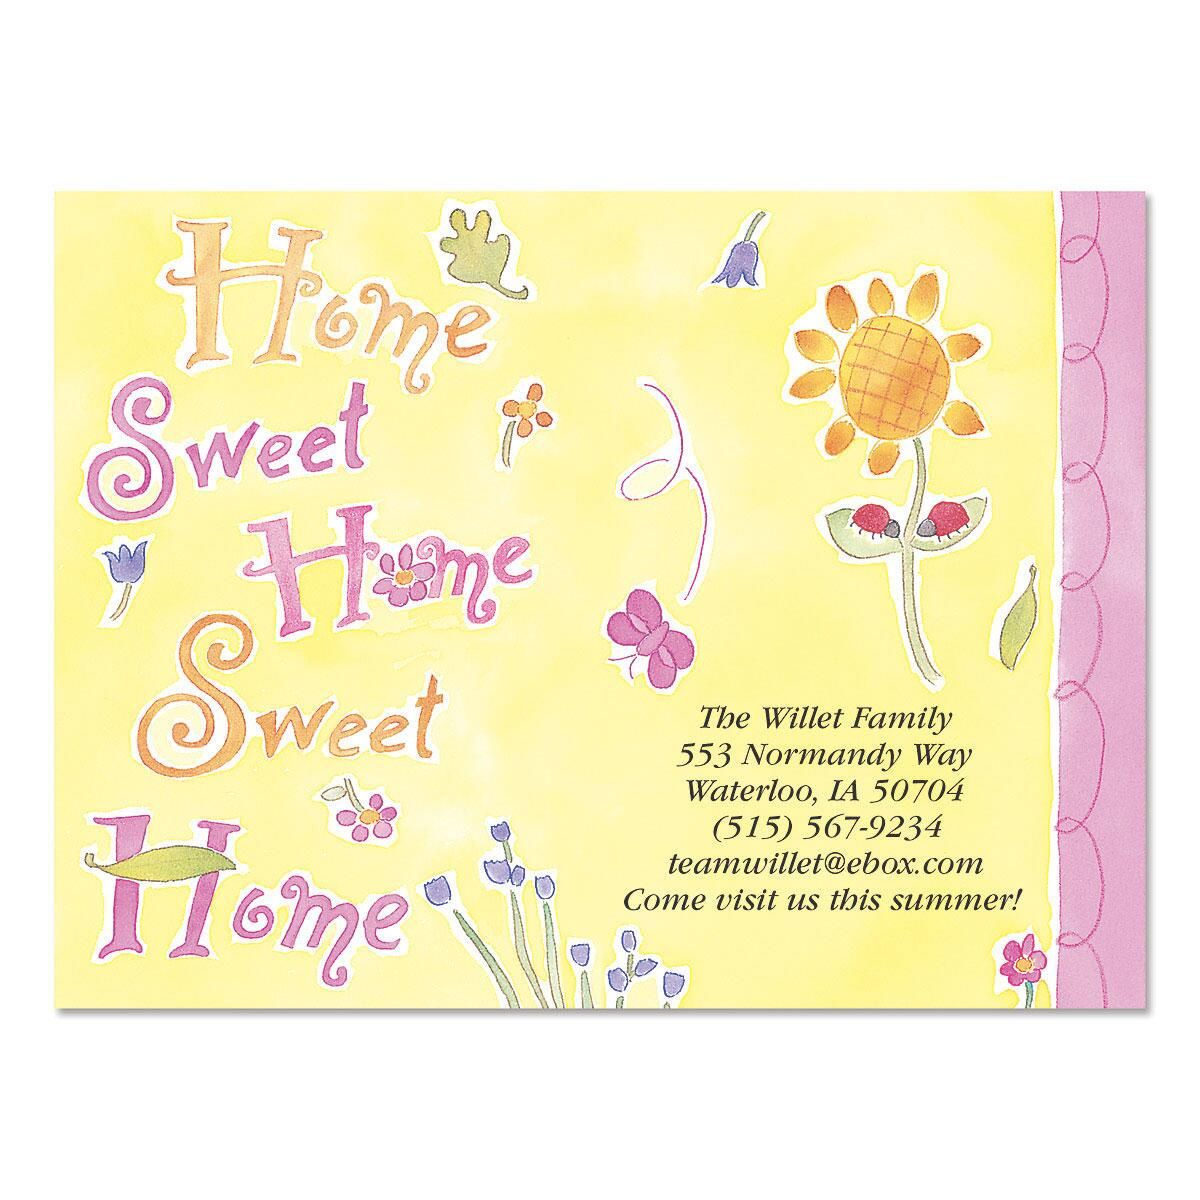 Home Sweet Home New Address Postcards